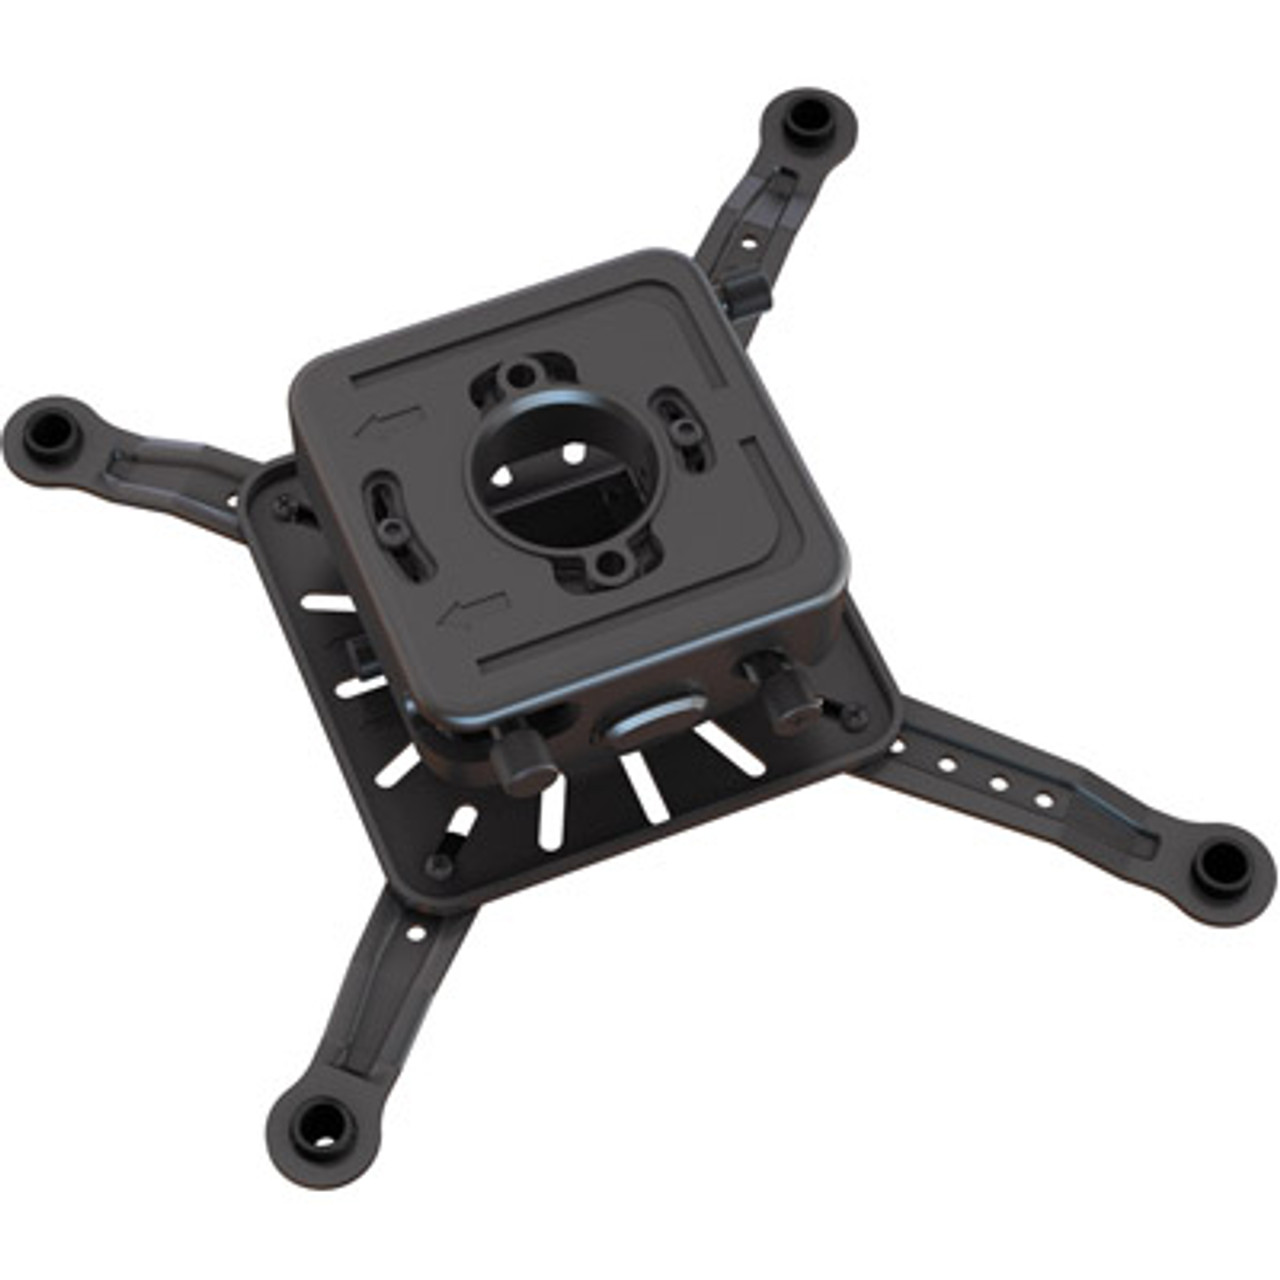 Mustang Pro MPJ-3 Heavy Duty Projector Mount with Micro Adjustment (up to 32kg)